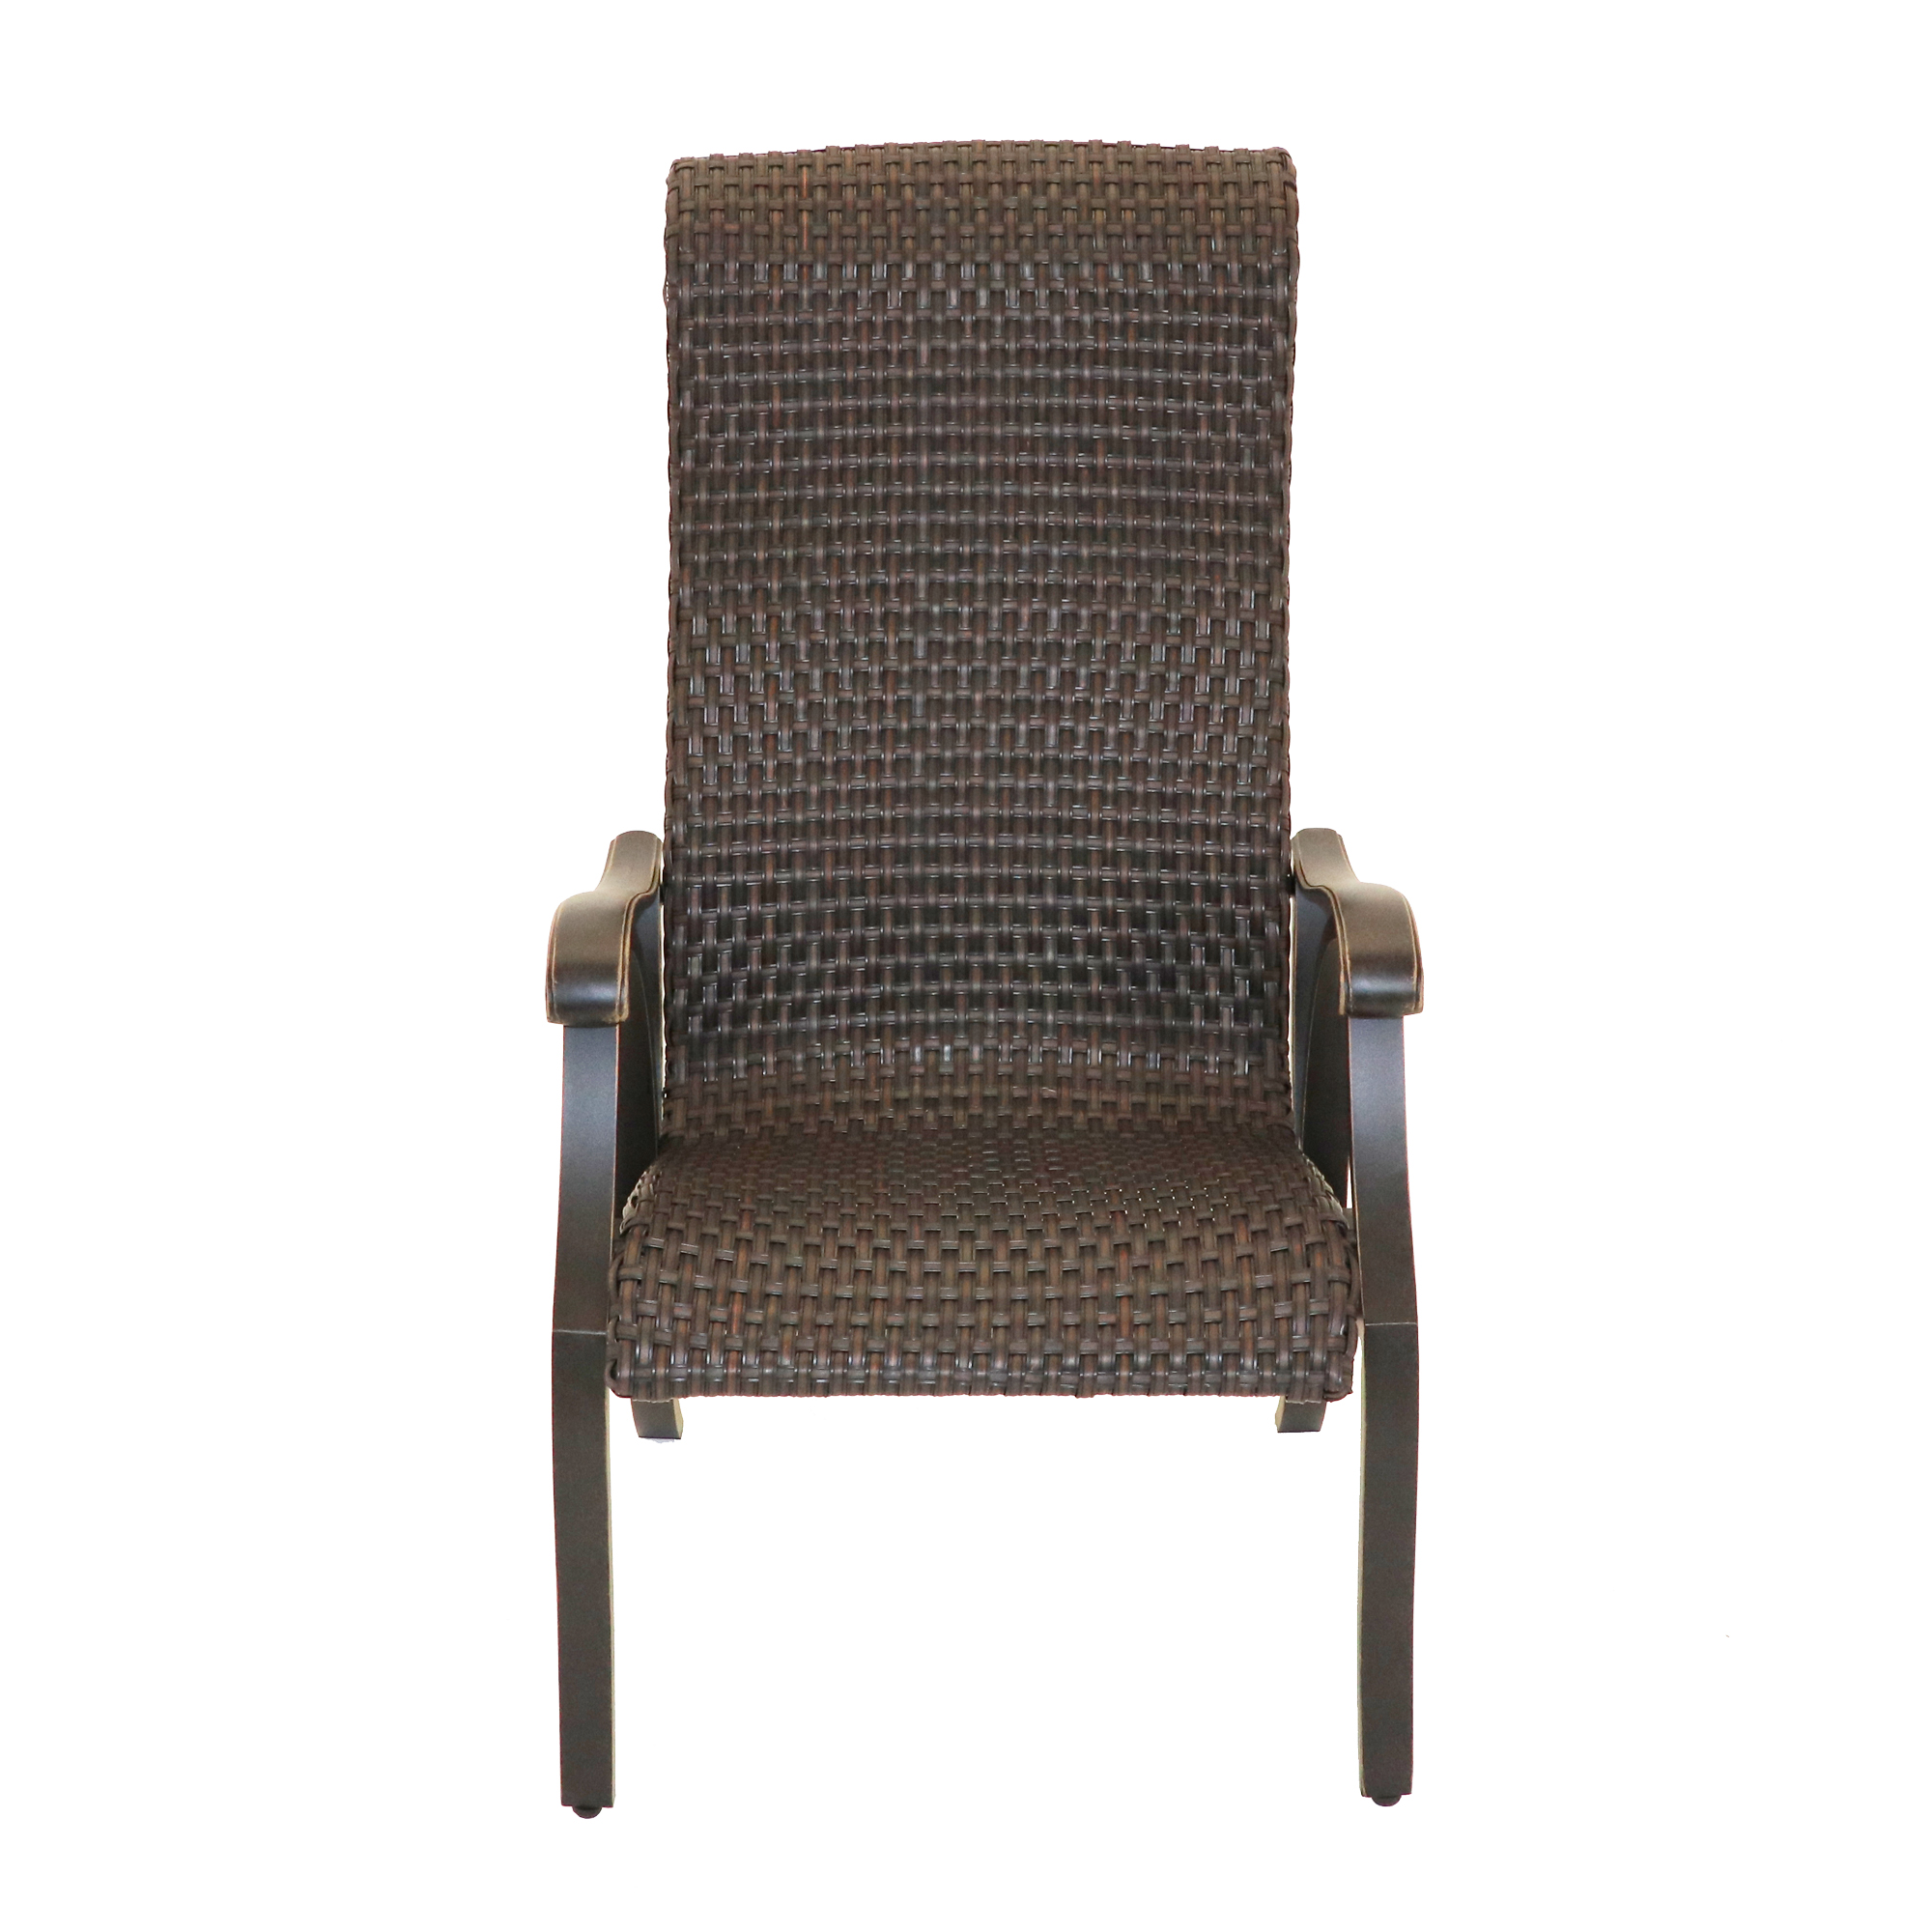 Castle Rock Wicker Dining Chair Patio Furniture At Sun